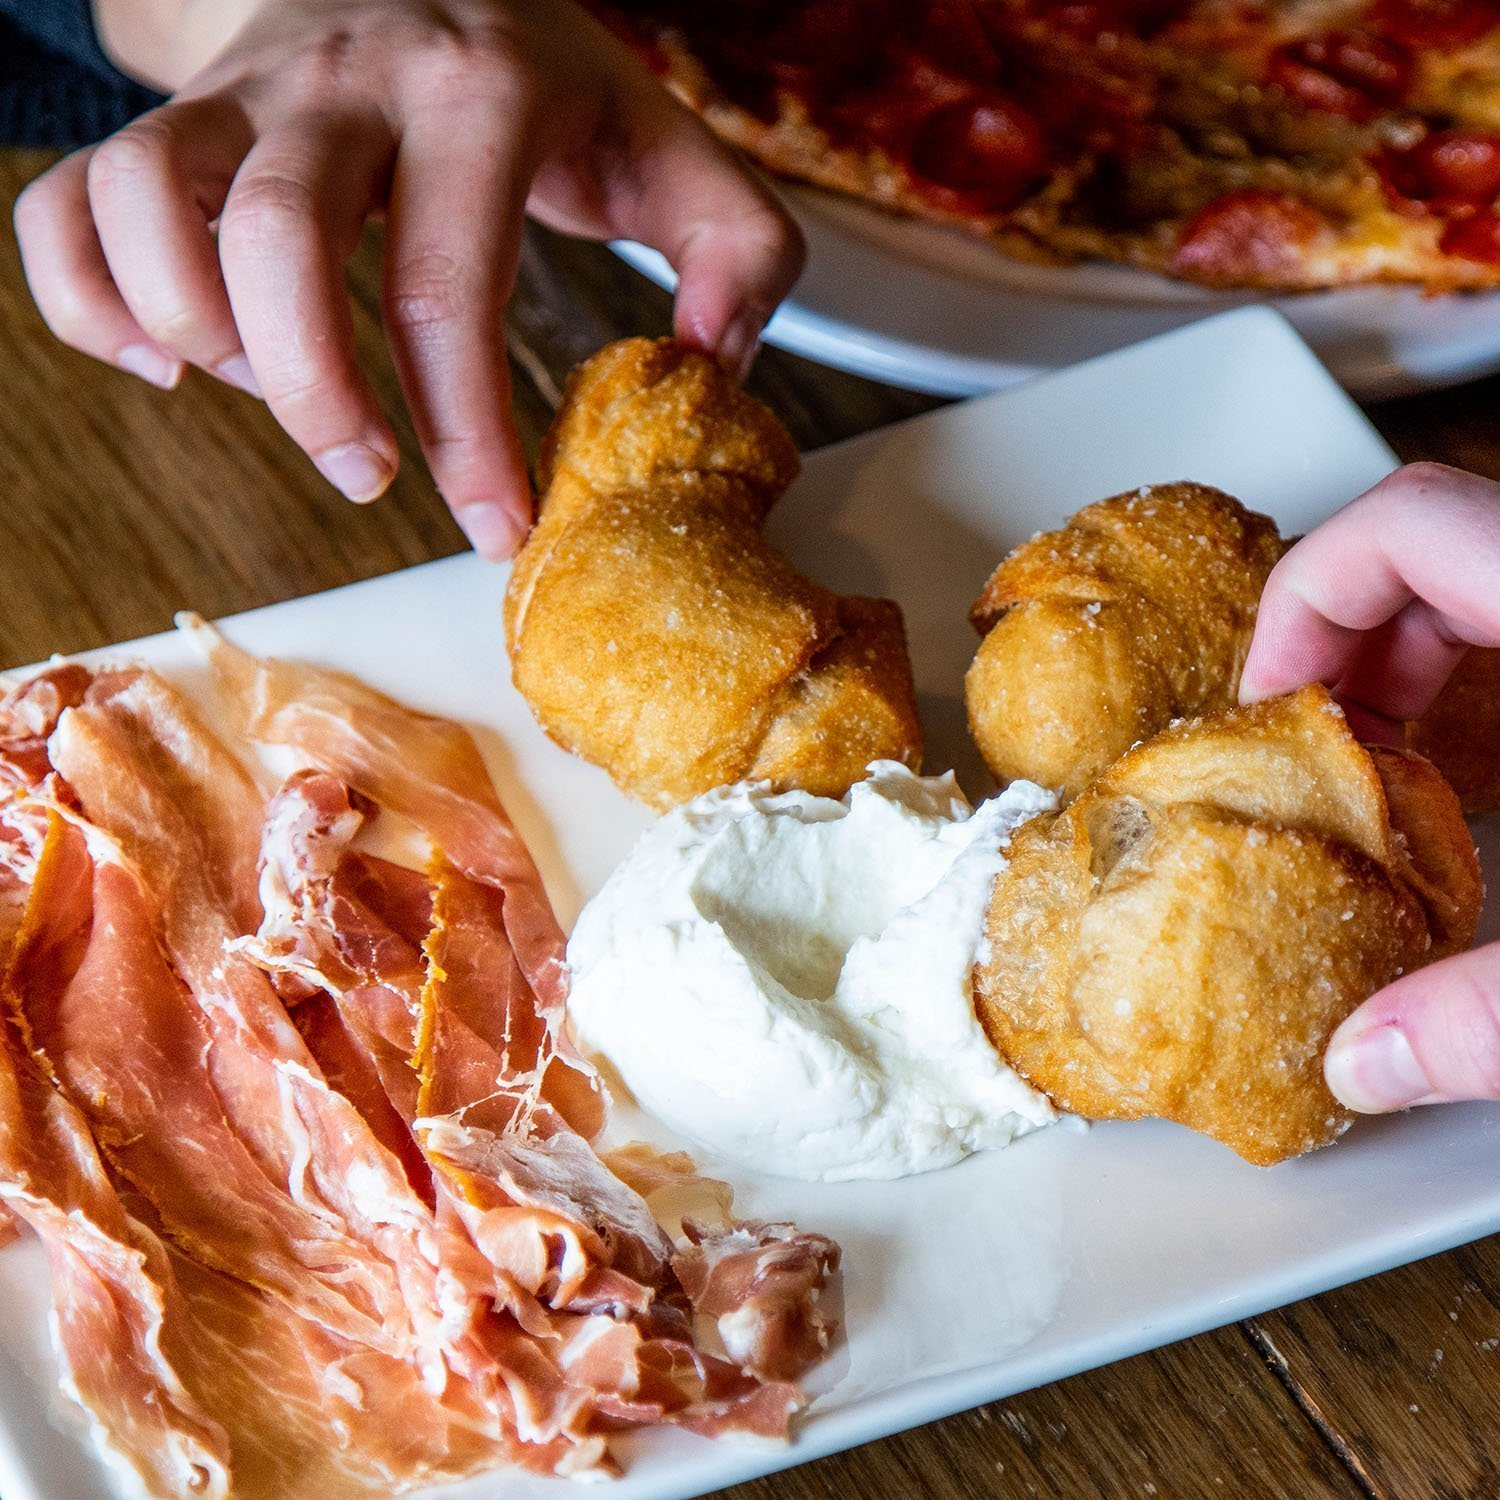 Coccoli - Fried dough rolled in sea salt served with prosciutto and whipped sweet ricotta